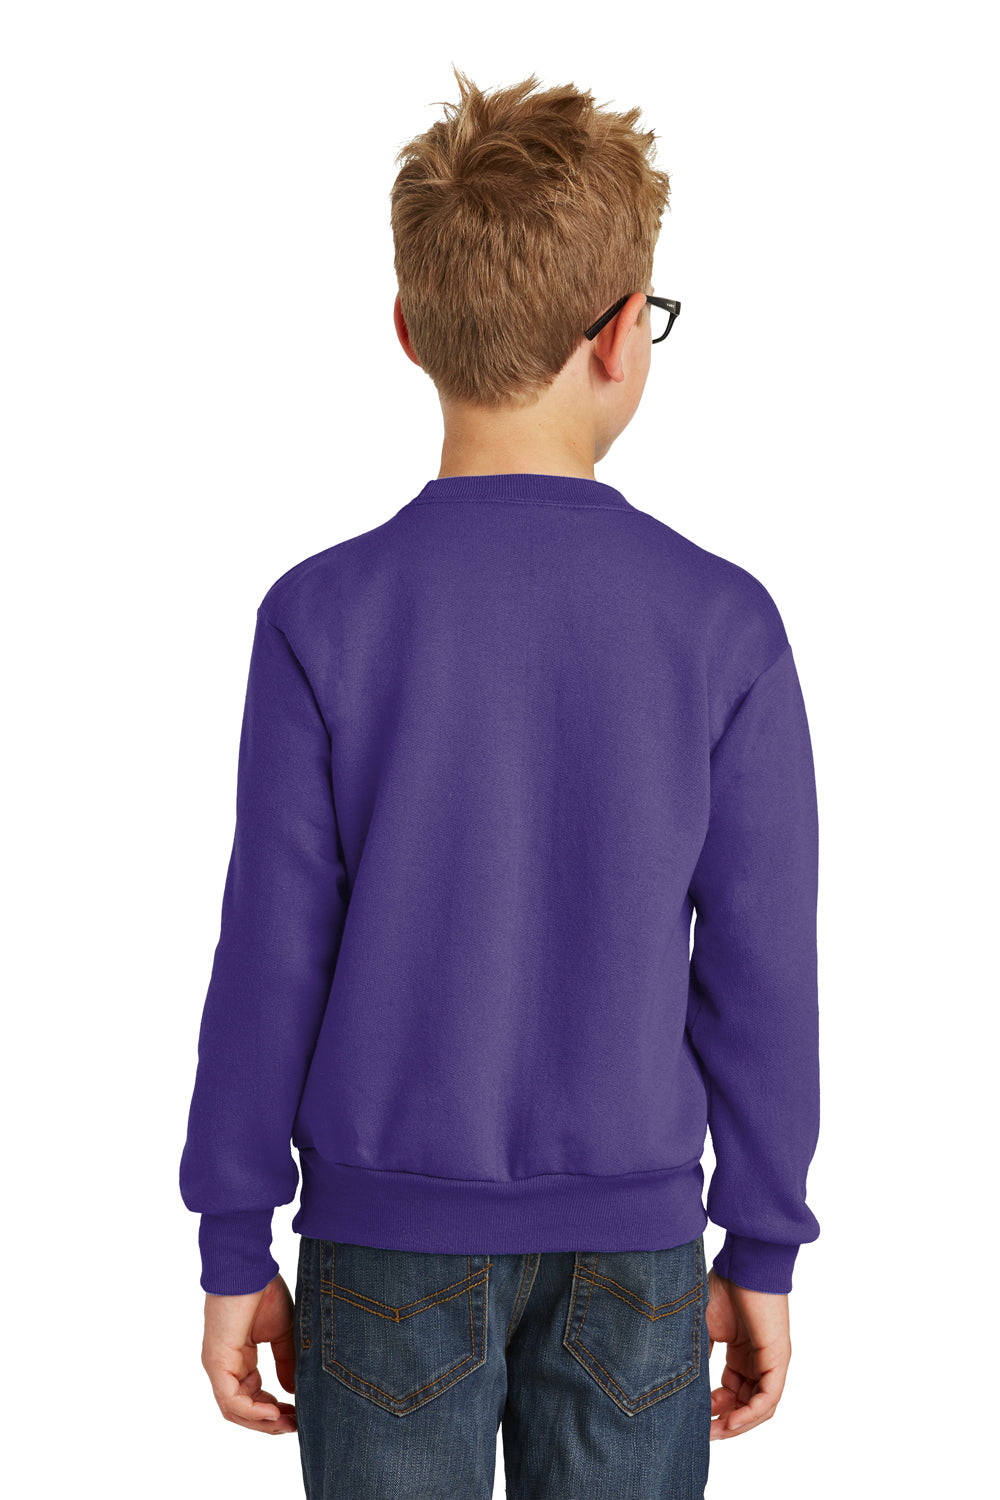 Port & Company PC90Y Youth Core Fleece Crewneck Sweatshirt Purple Back